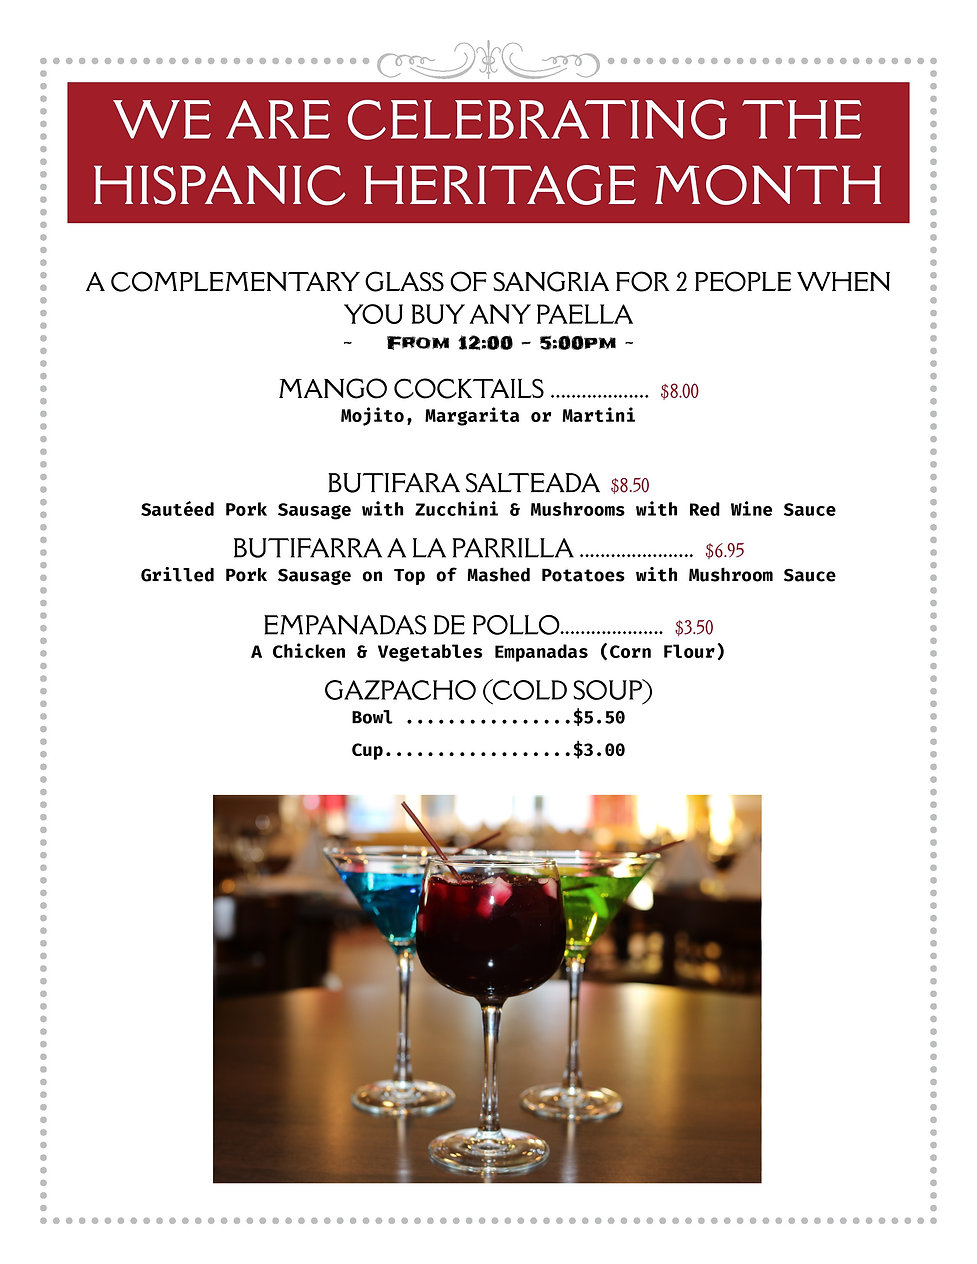 Hispanic Heritage Month Sep 17 - Oct 20-